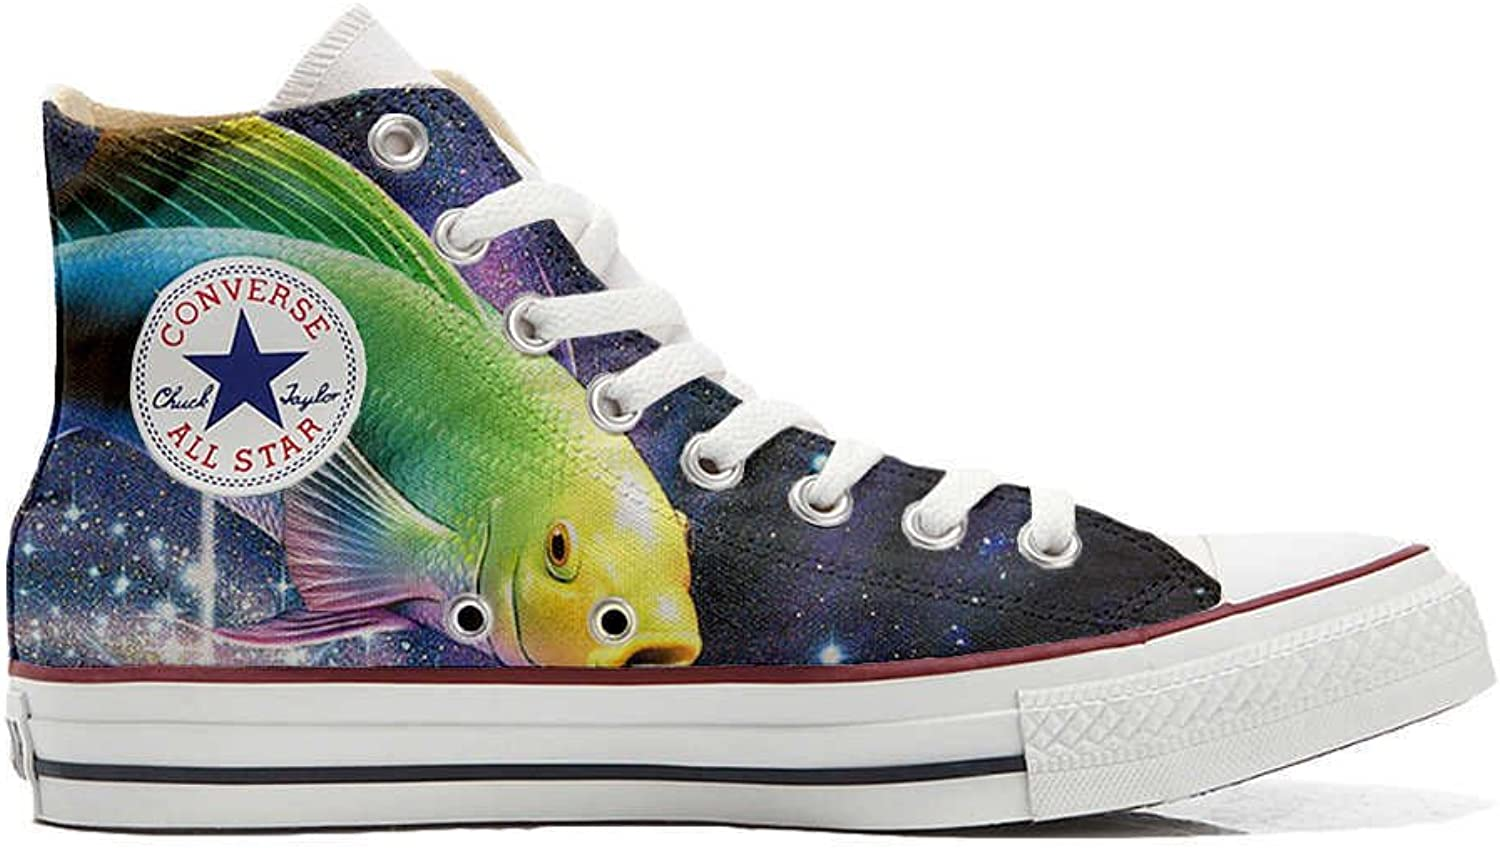 Converse All Star Cutomized Cutomized Cutomized - personalisierte Schuhe (Handwerk Produkt) Sushi B06X6KPBS5  Super Handwerkskunst c43b2c